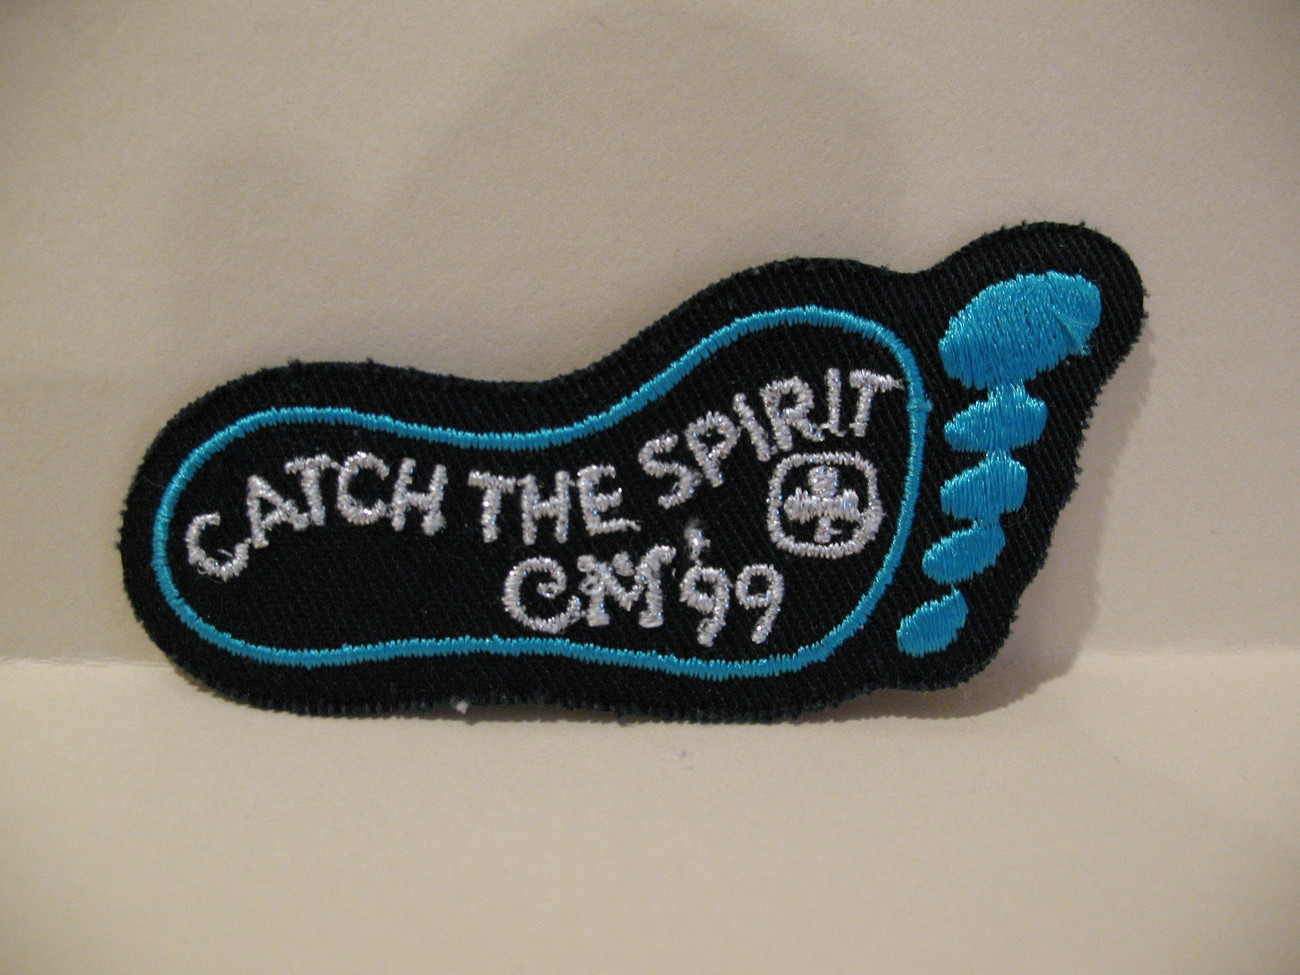 Catch The Spirit Girl Guides Souvenir Badge Patch Crest